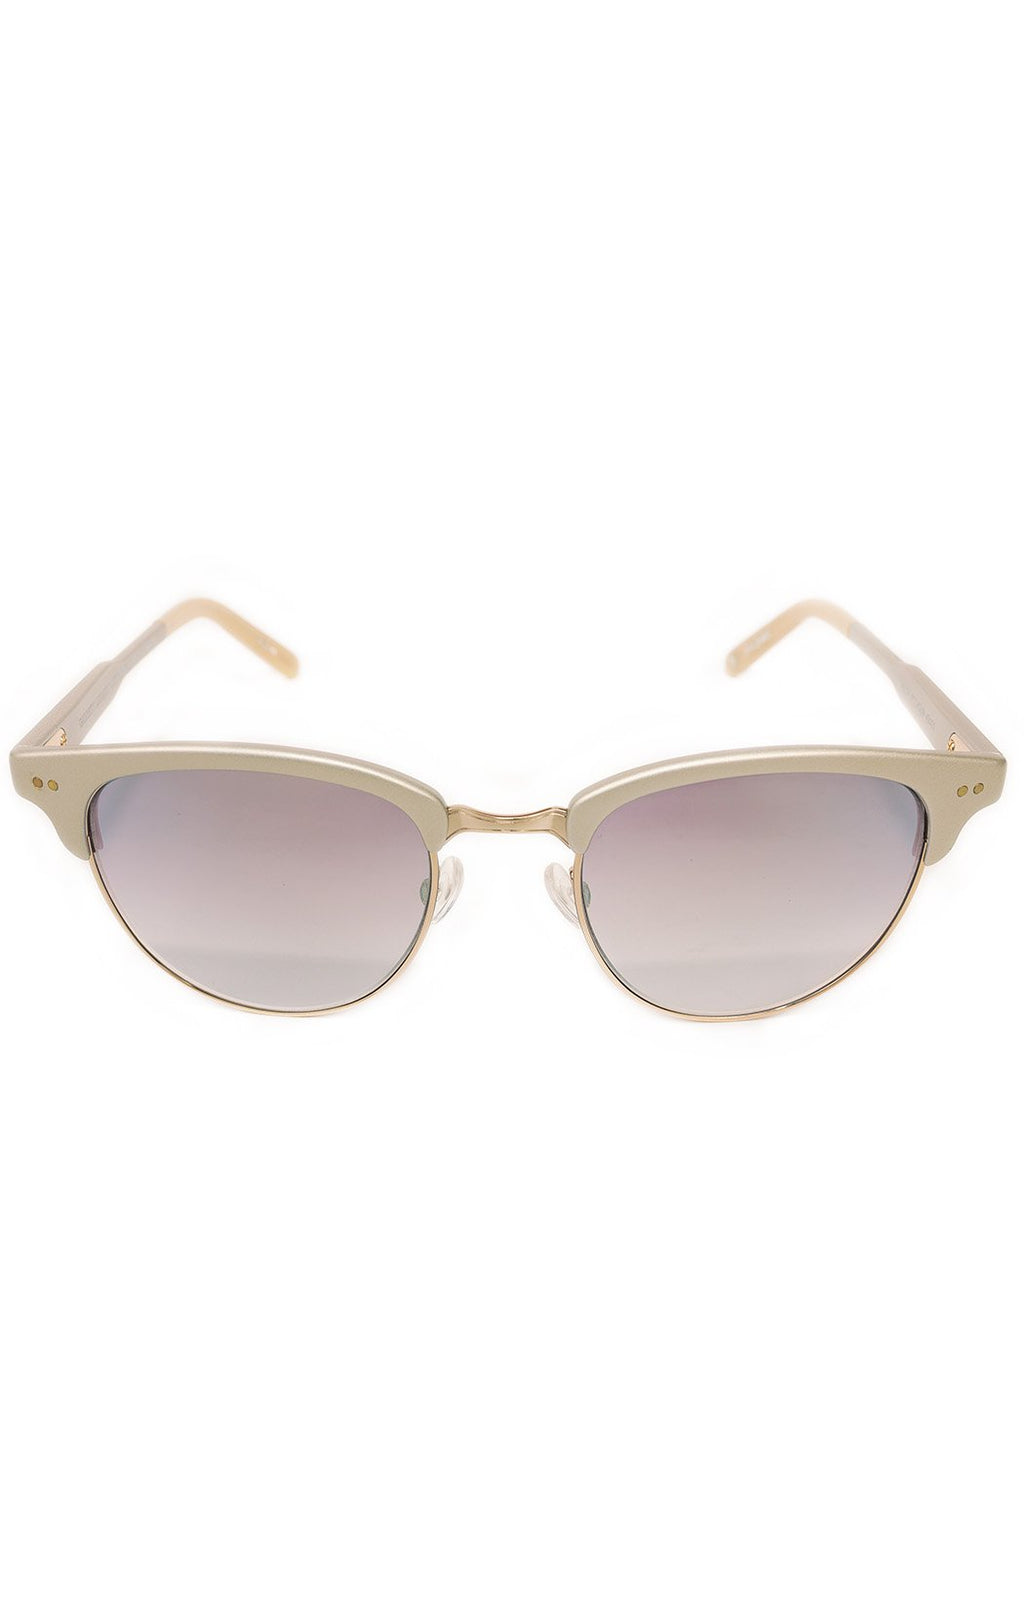 "Front view of GARRETT LEIGHT Sunglasses Size: 5.5"" L x 1.75"" W"